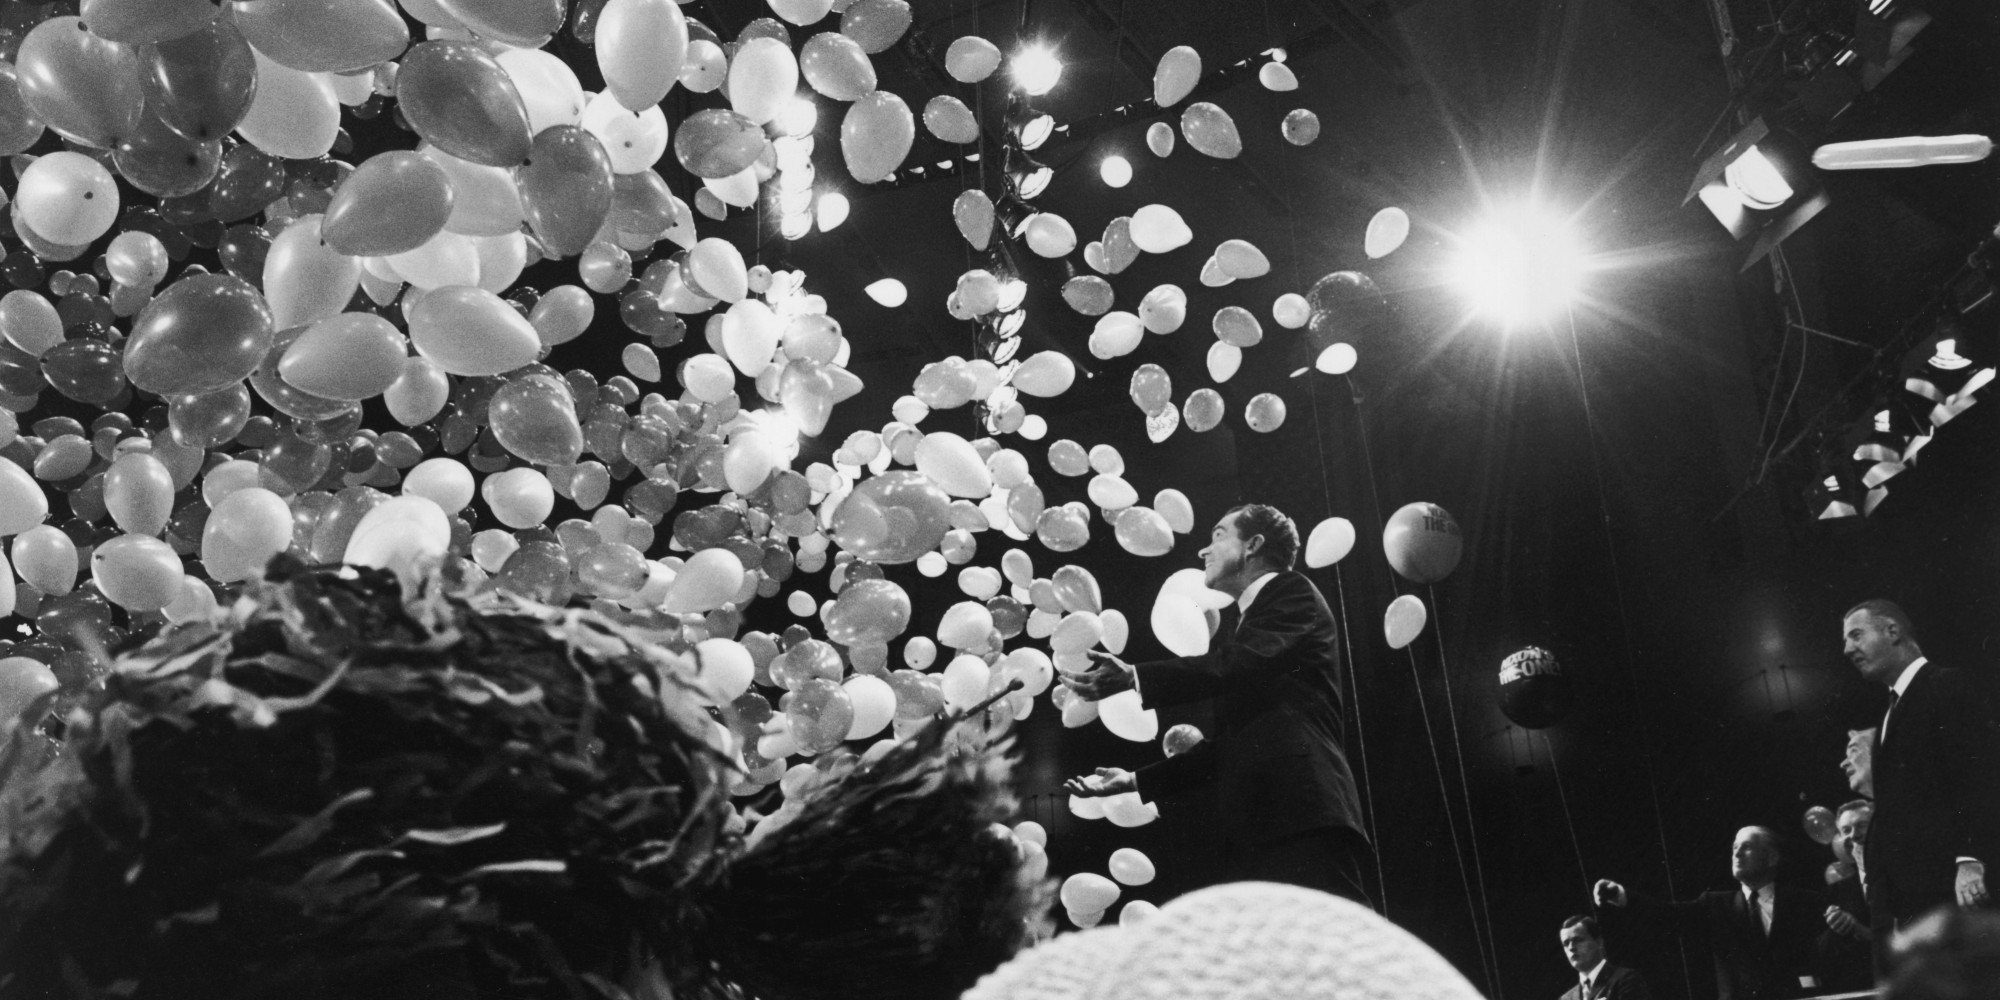 31st October 1968: Republican presidential candidate Richard Nixon (1913-1994) is showered by balloons while standing on stage at a political rally in Madison Square Garden, New York City. (Photo by Santi Visalli Inc./Getty Images)